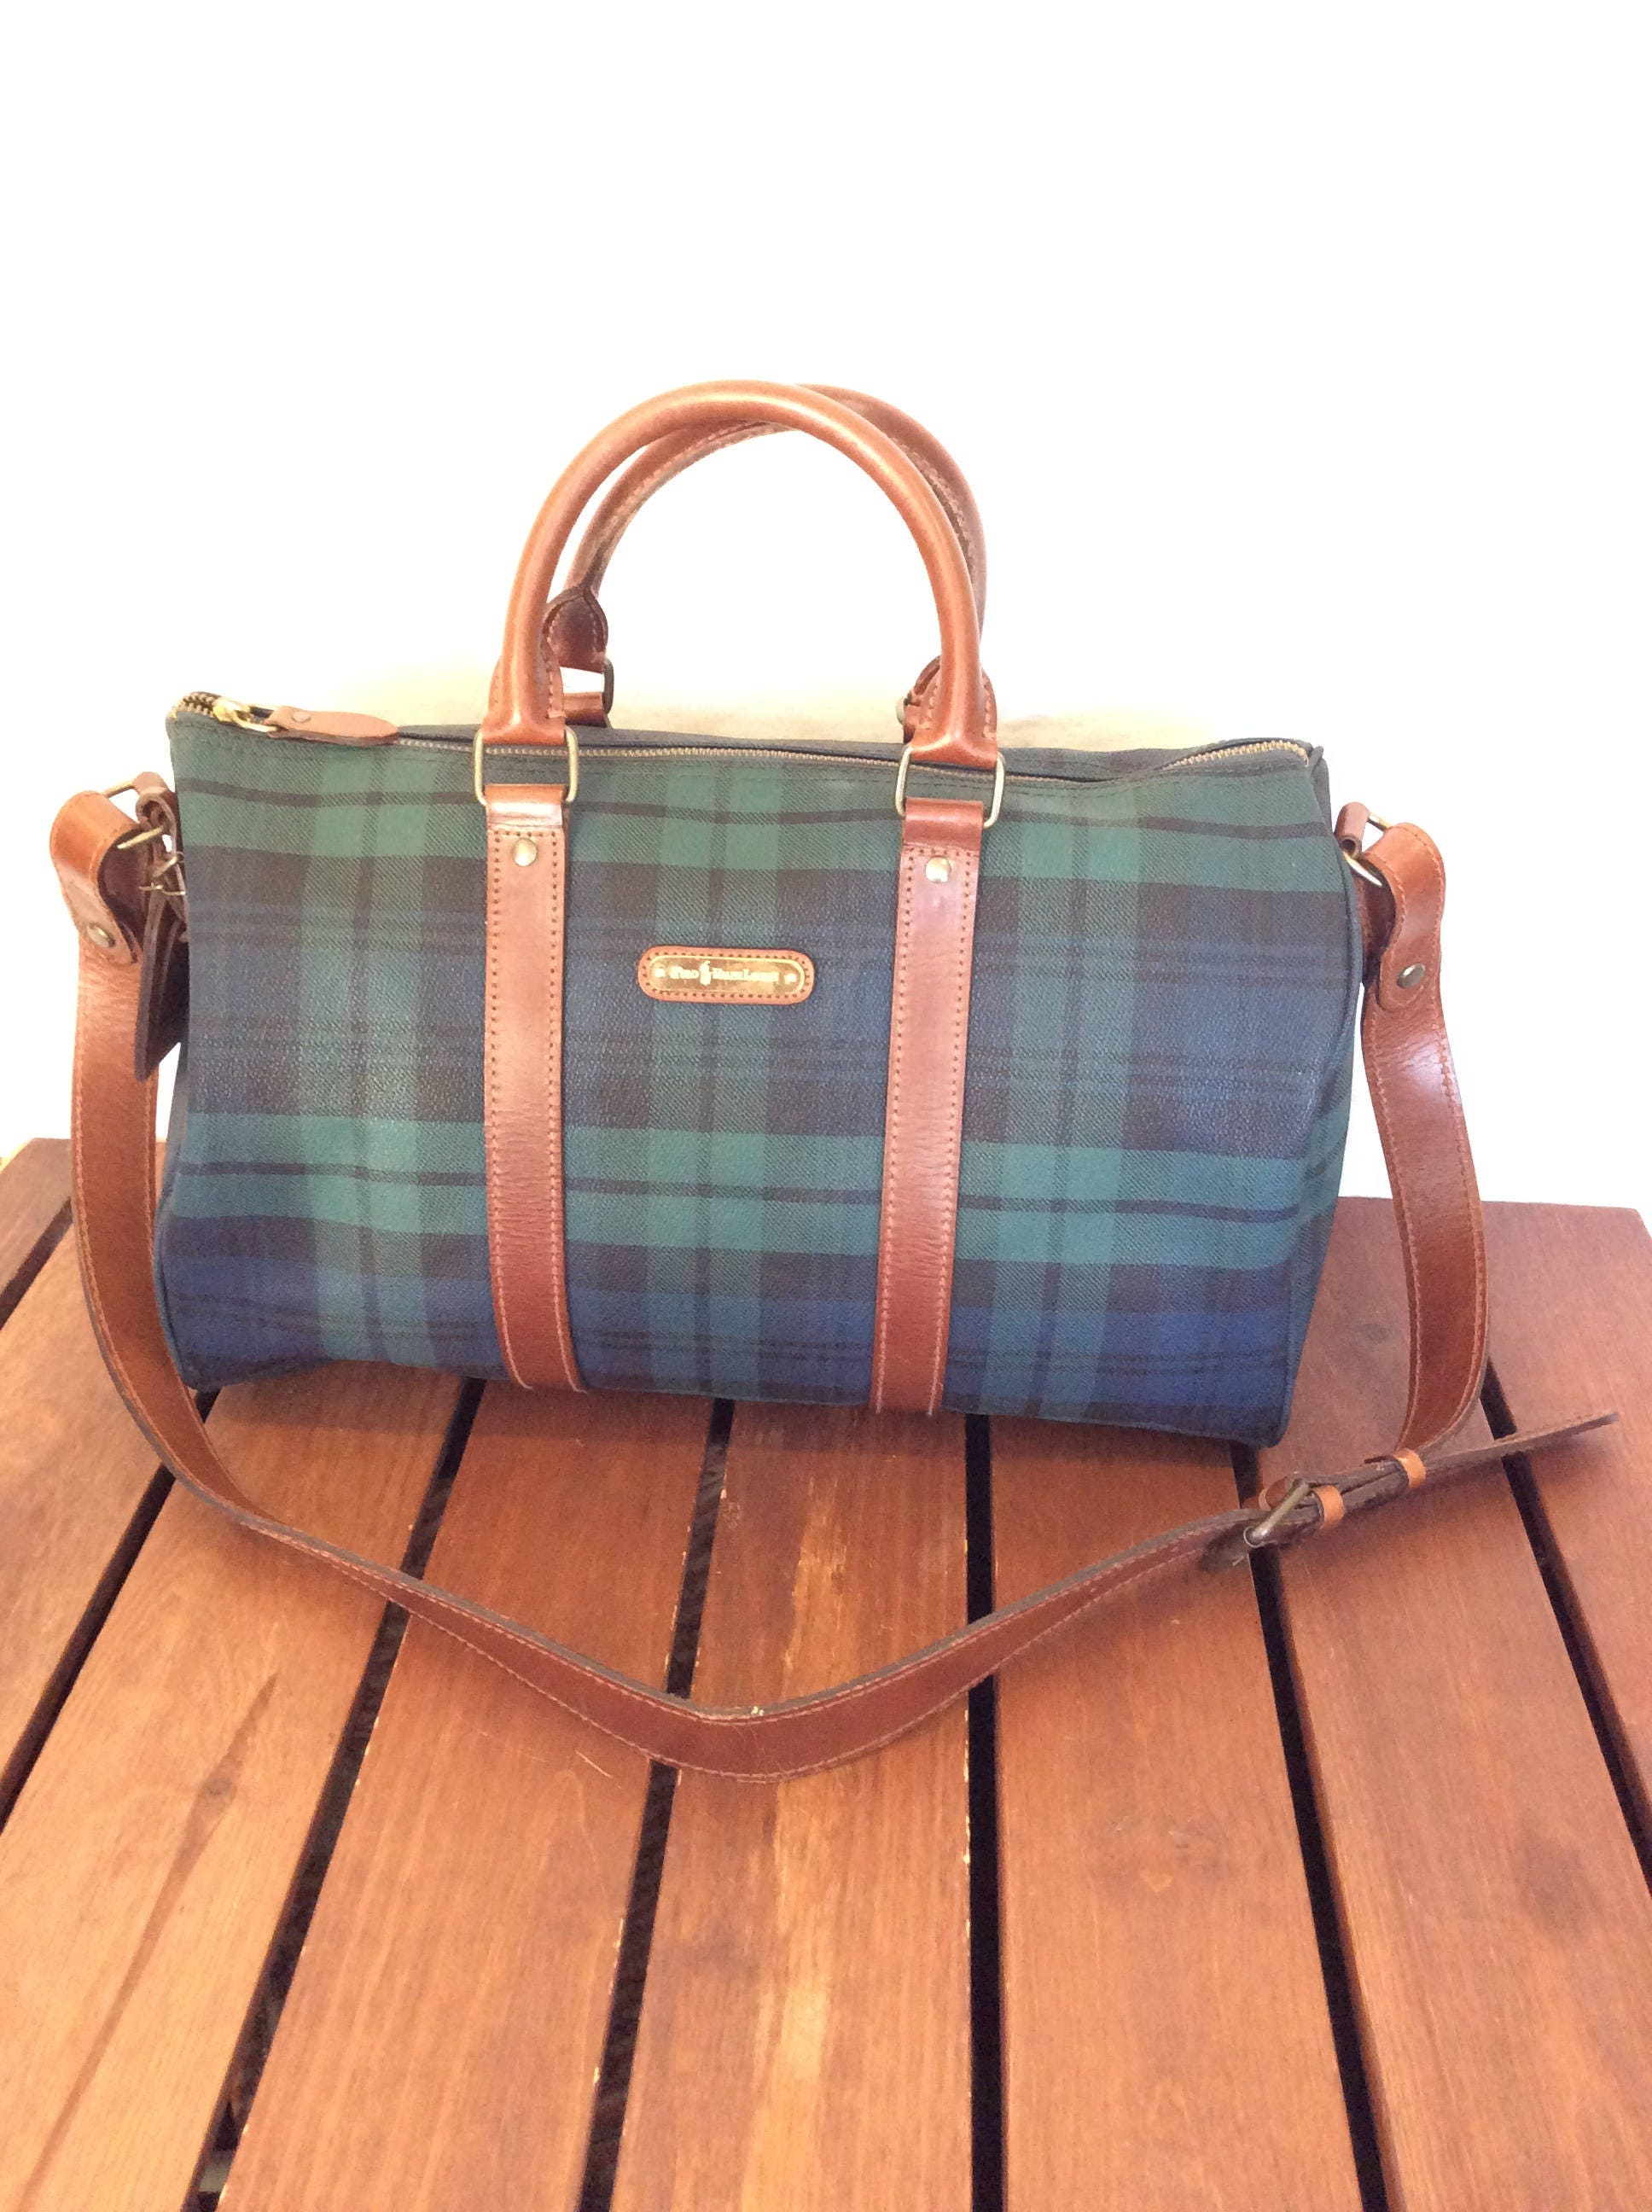 POLO RALPH LAUREN Vintage Genuine Houndstooth Green Canvas and Brown  Leather Trim Satchel Bag Duffle Travel Bag f720d5e180e36